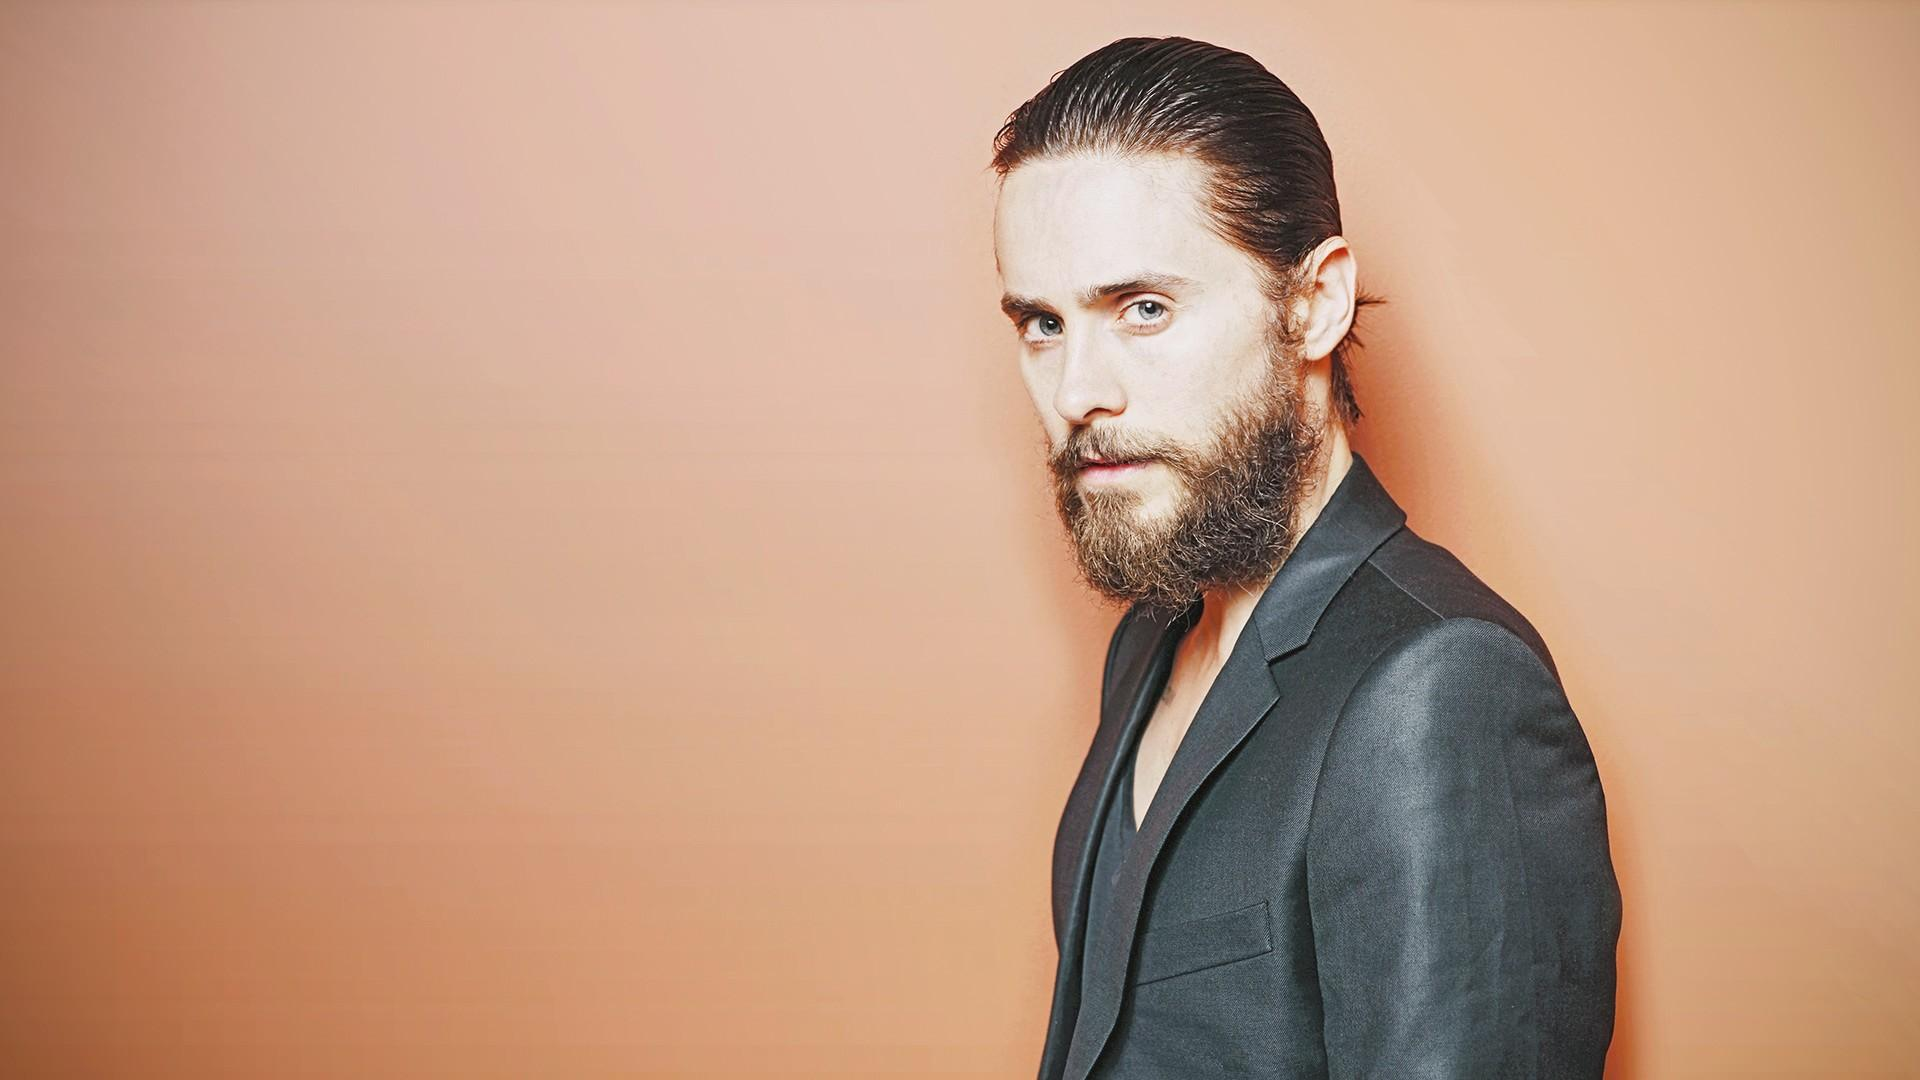 Jared Leto Wallpapers Images Photos Pictures Backgrounds